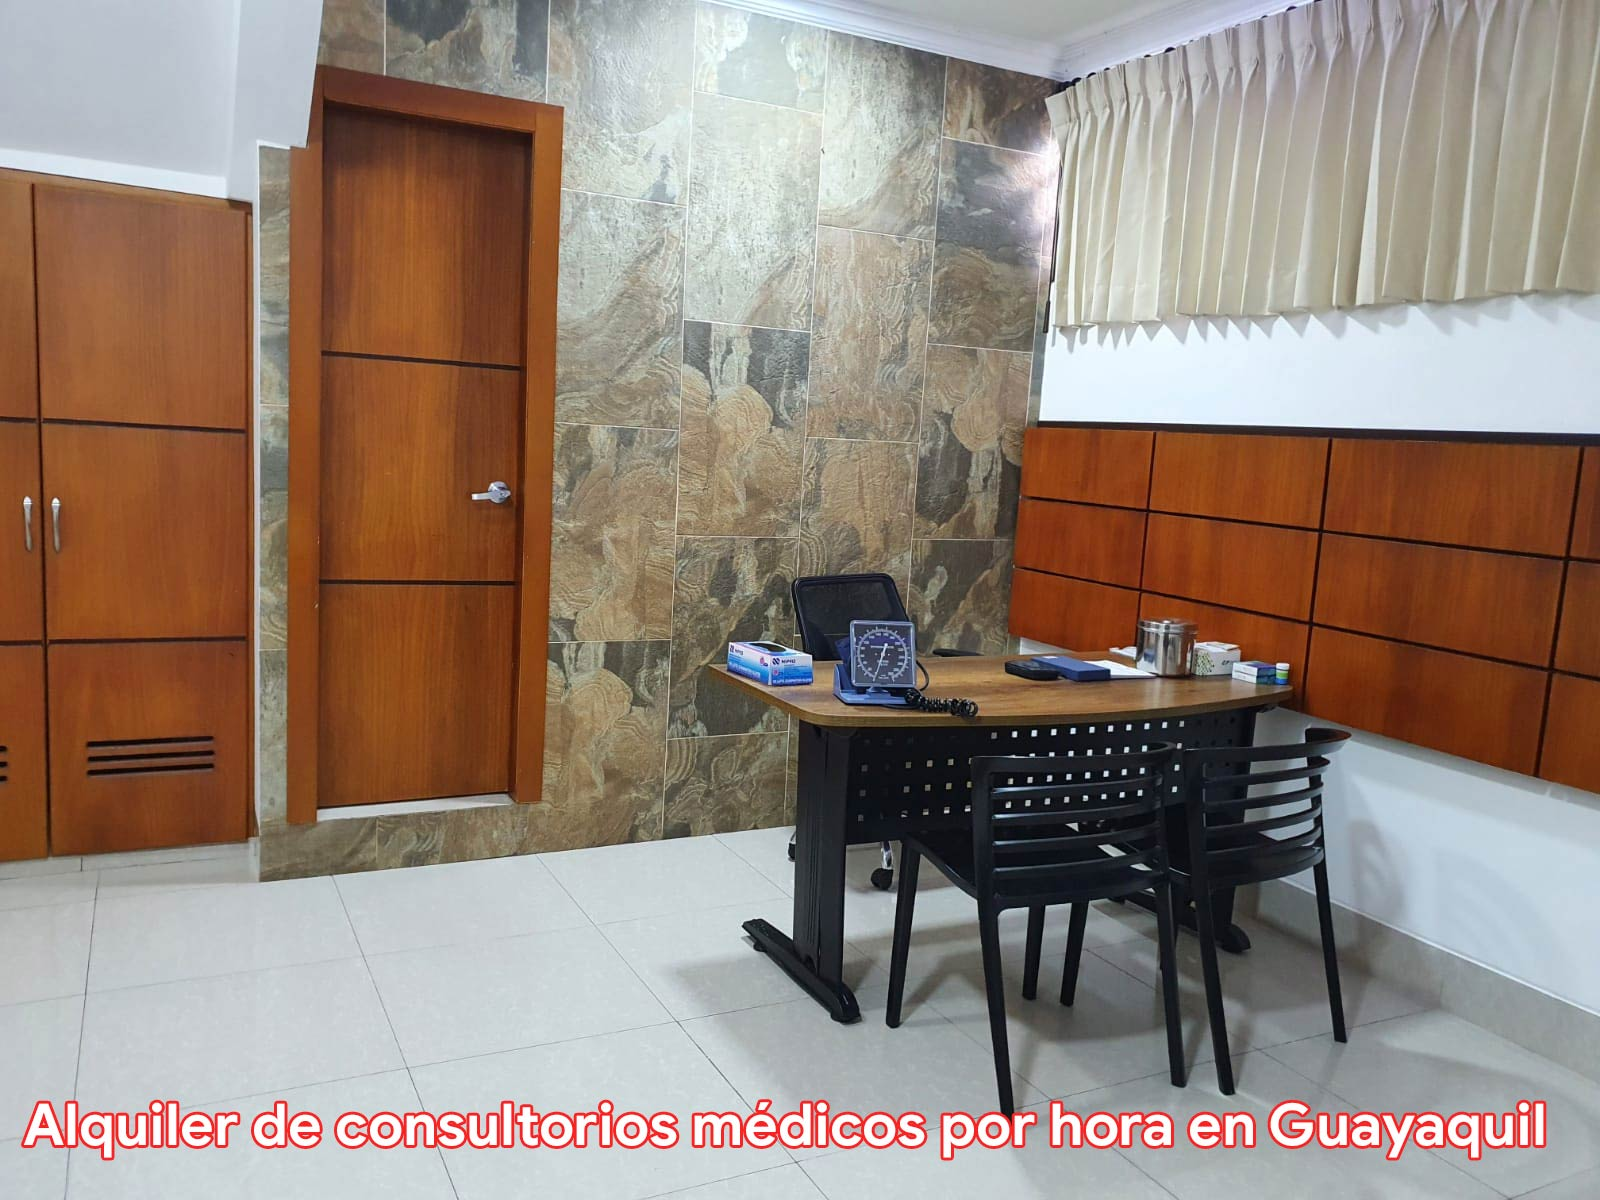 coworking médico Guayaquil